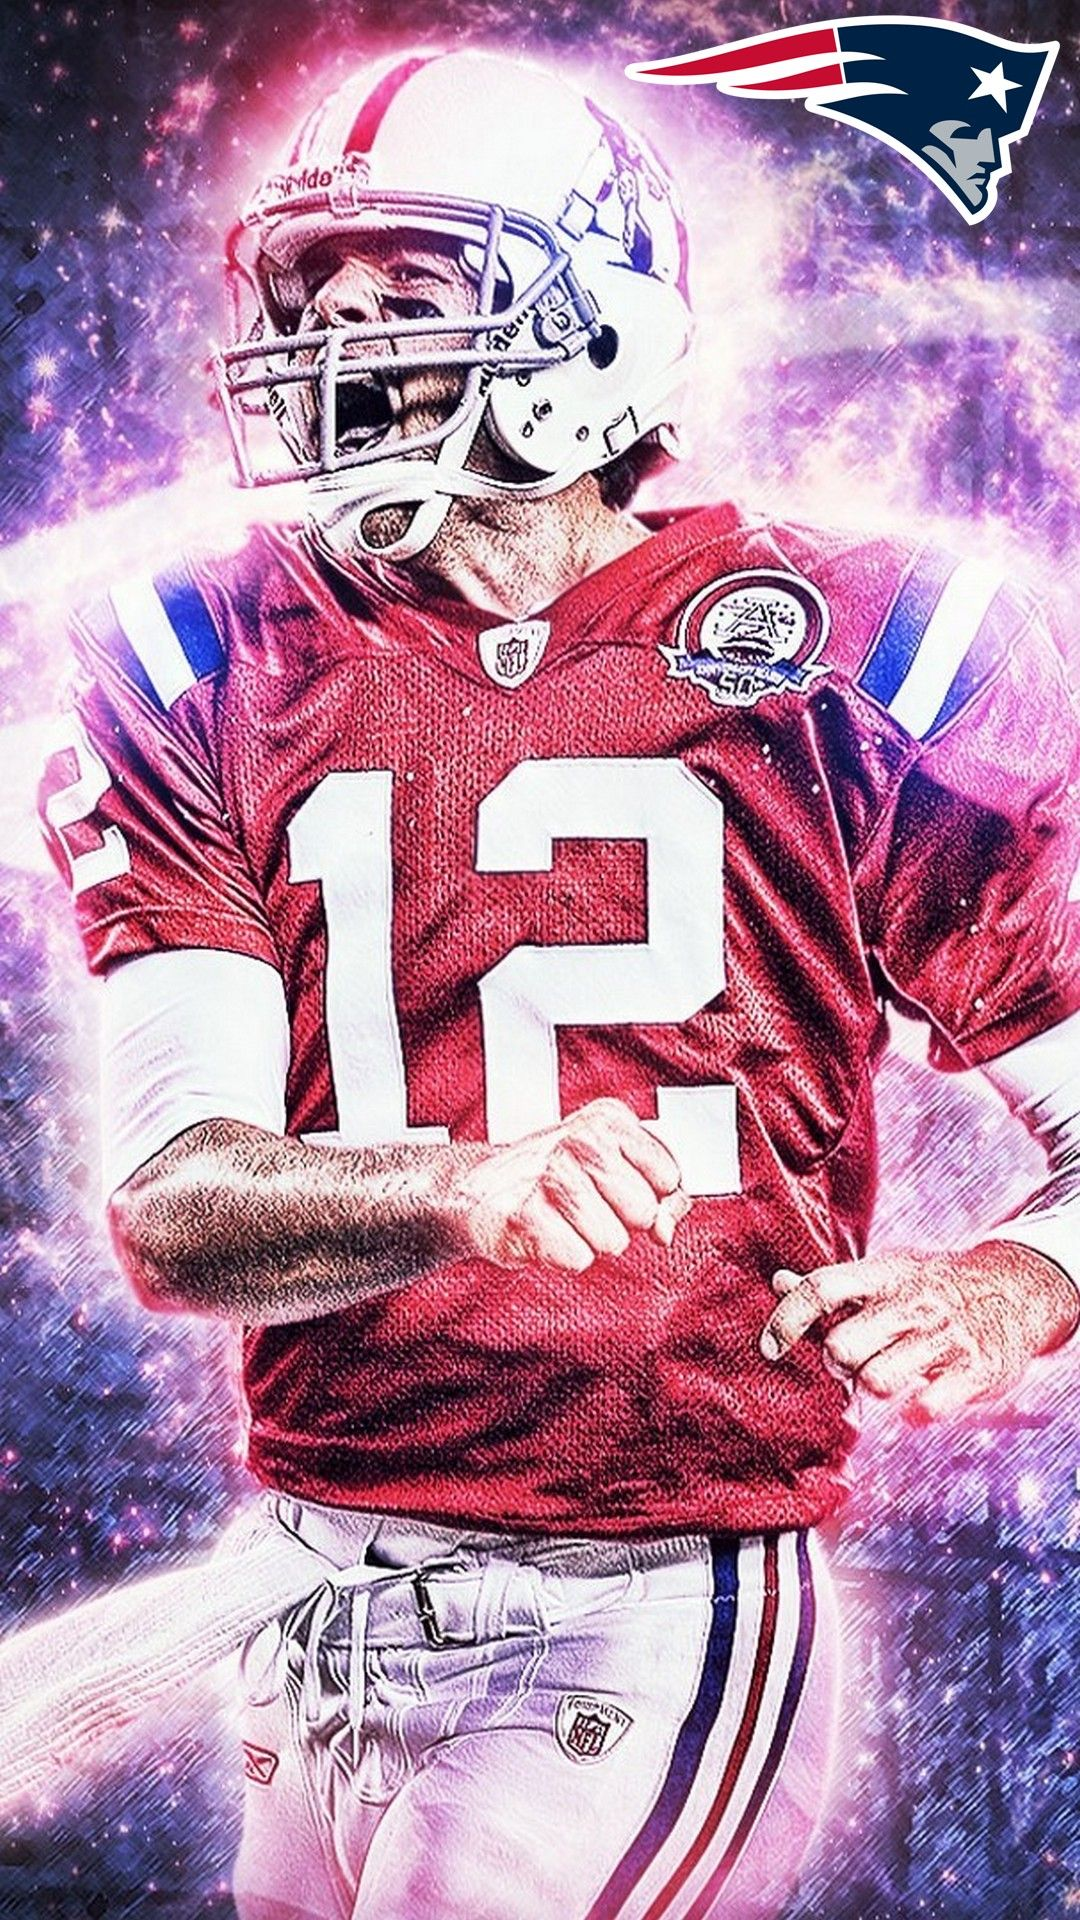 Tom Brady Goat Iphone 8 Wallpaper 2020 Nfl Football Wallpapers Tom Brady Goat Tom Brady Wallpaper Tom Brady